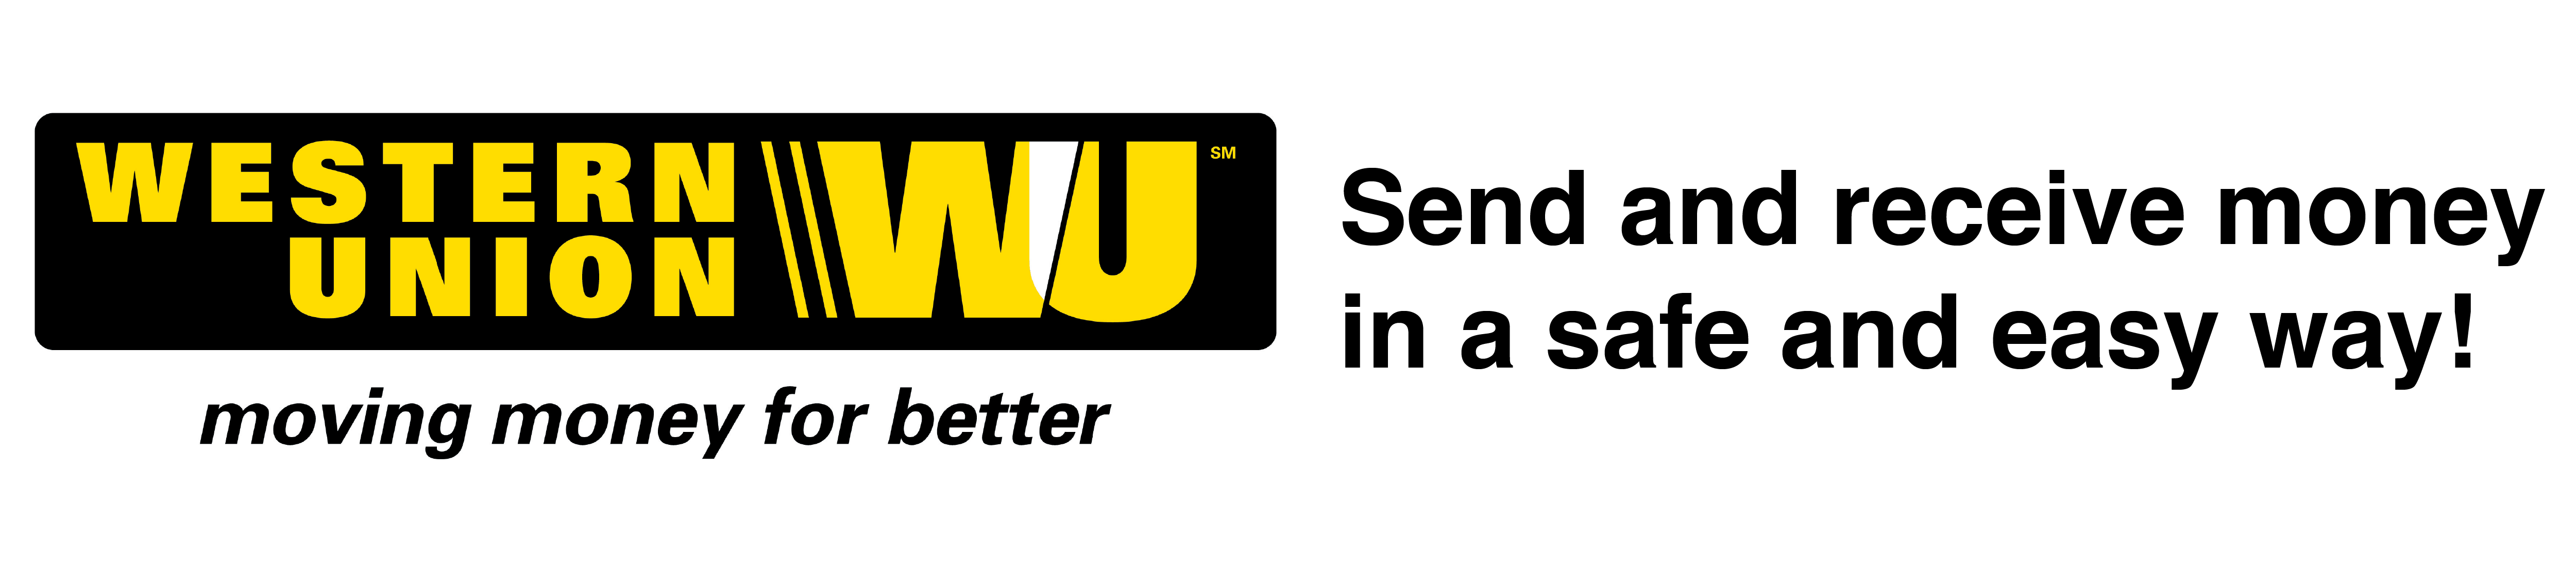 Western Union - Send and receive money in a safe and easy way!